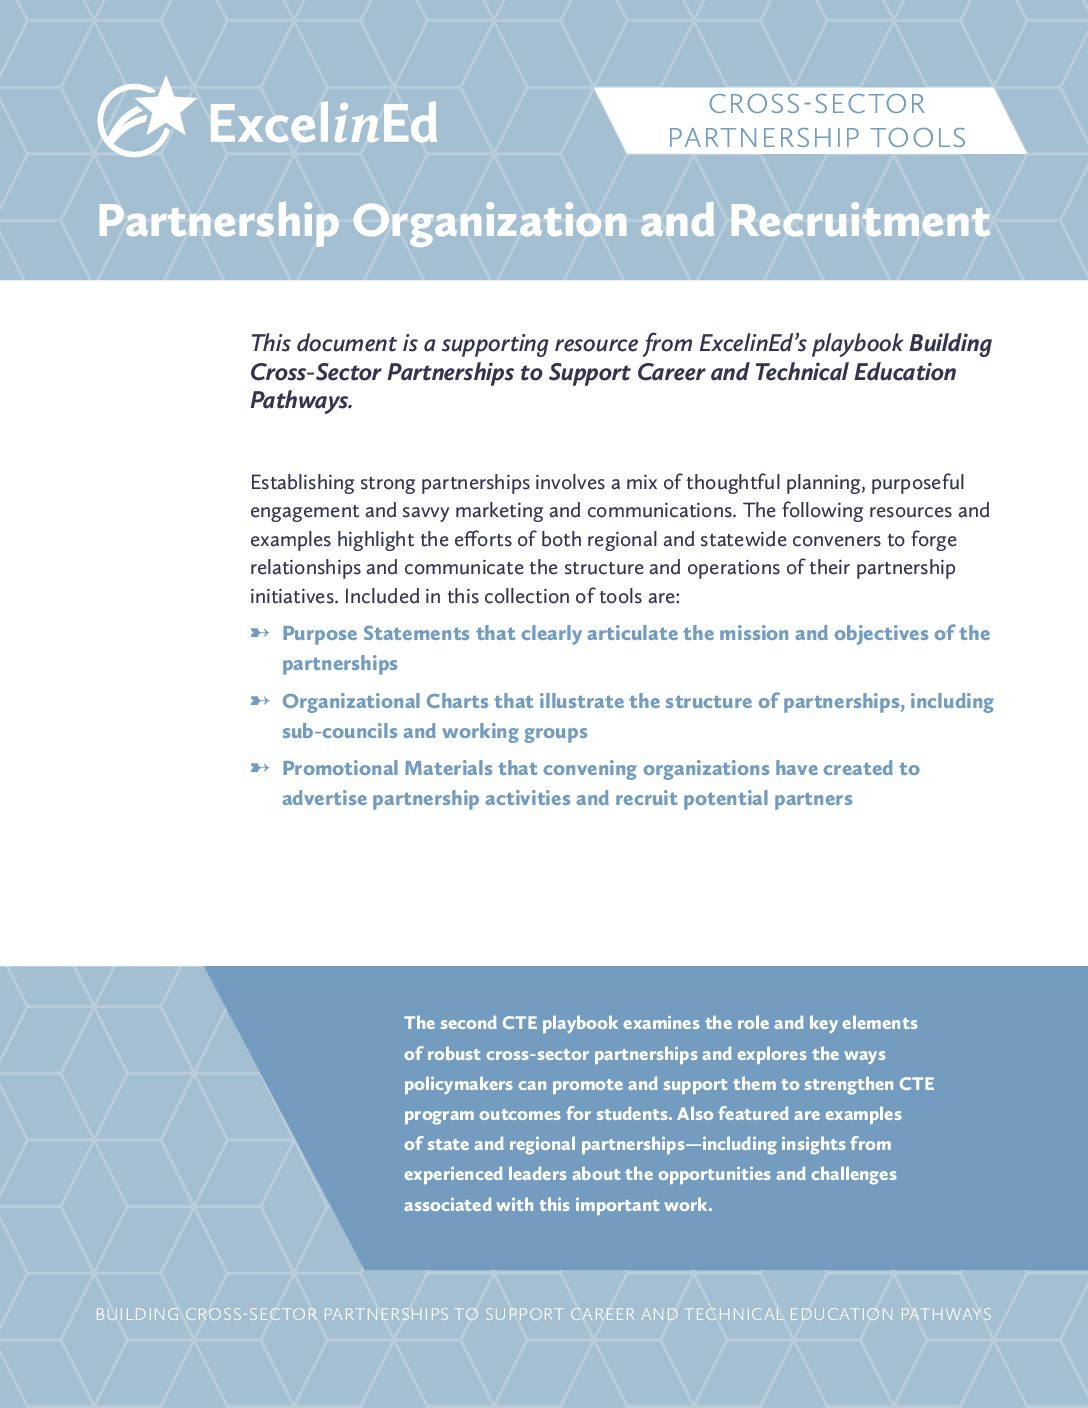 Playbook 2: Cross-Sector Partnership Tools &#8211; Partnership Organization and Recruitment &#8211; May 2018>									 									</a> 									<a href=